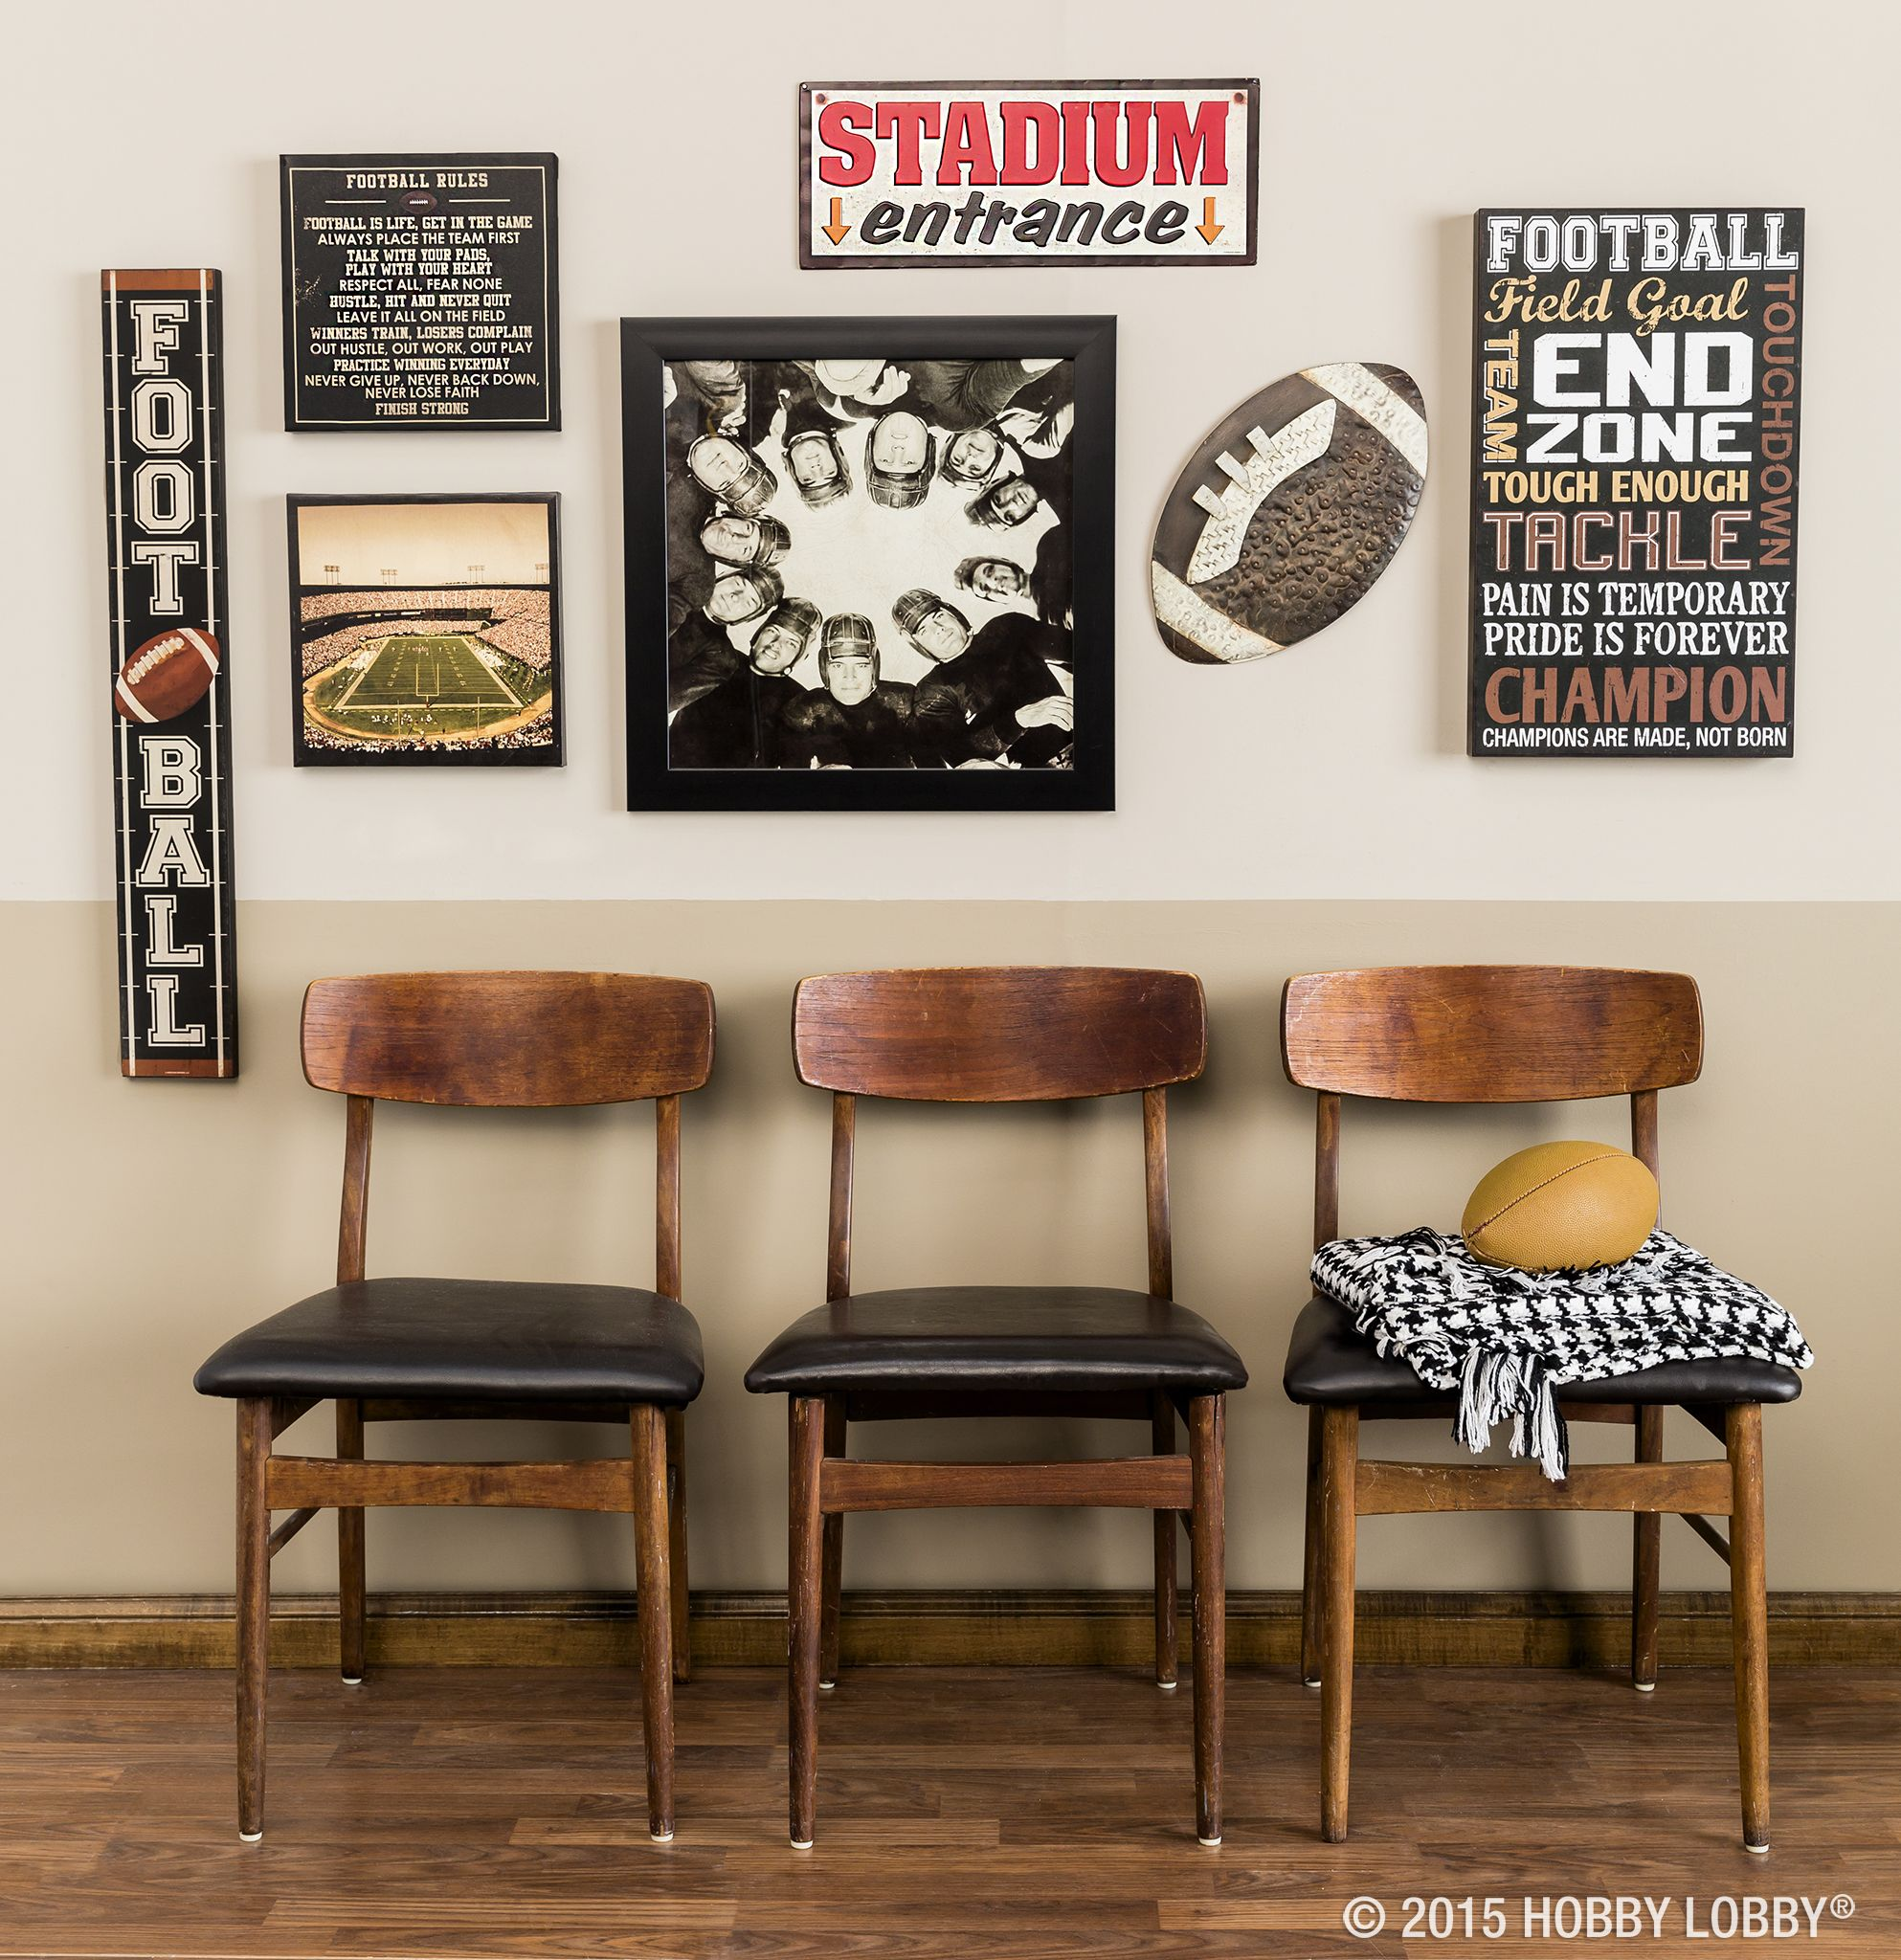 Dress Up Your Office Or Den With Fan-worthy Football